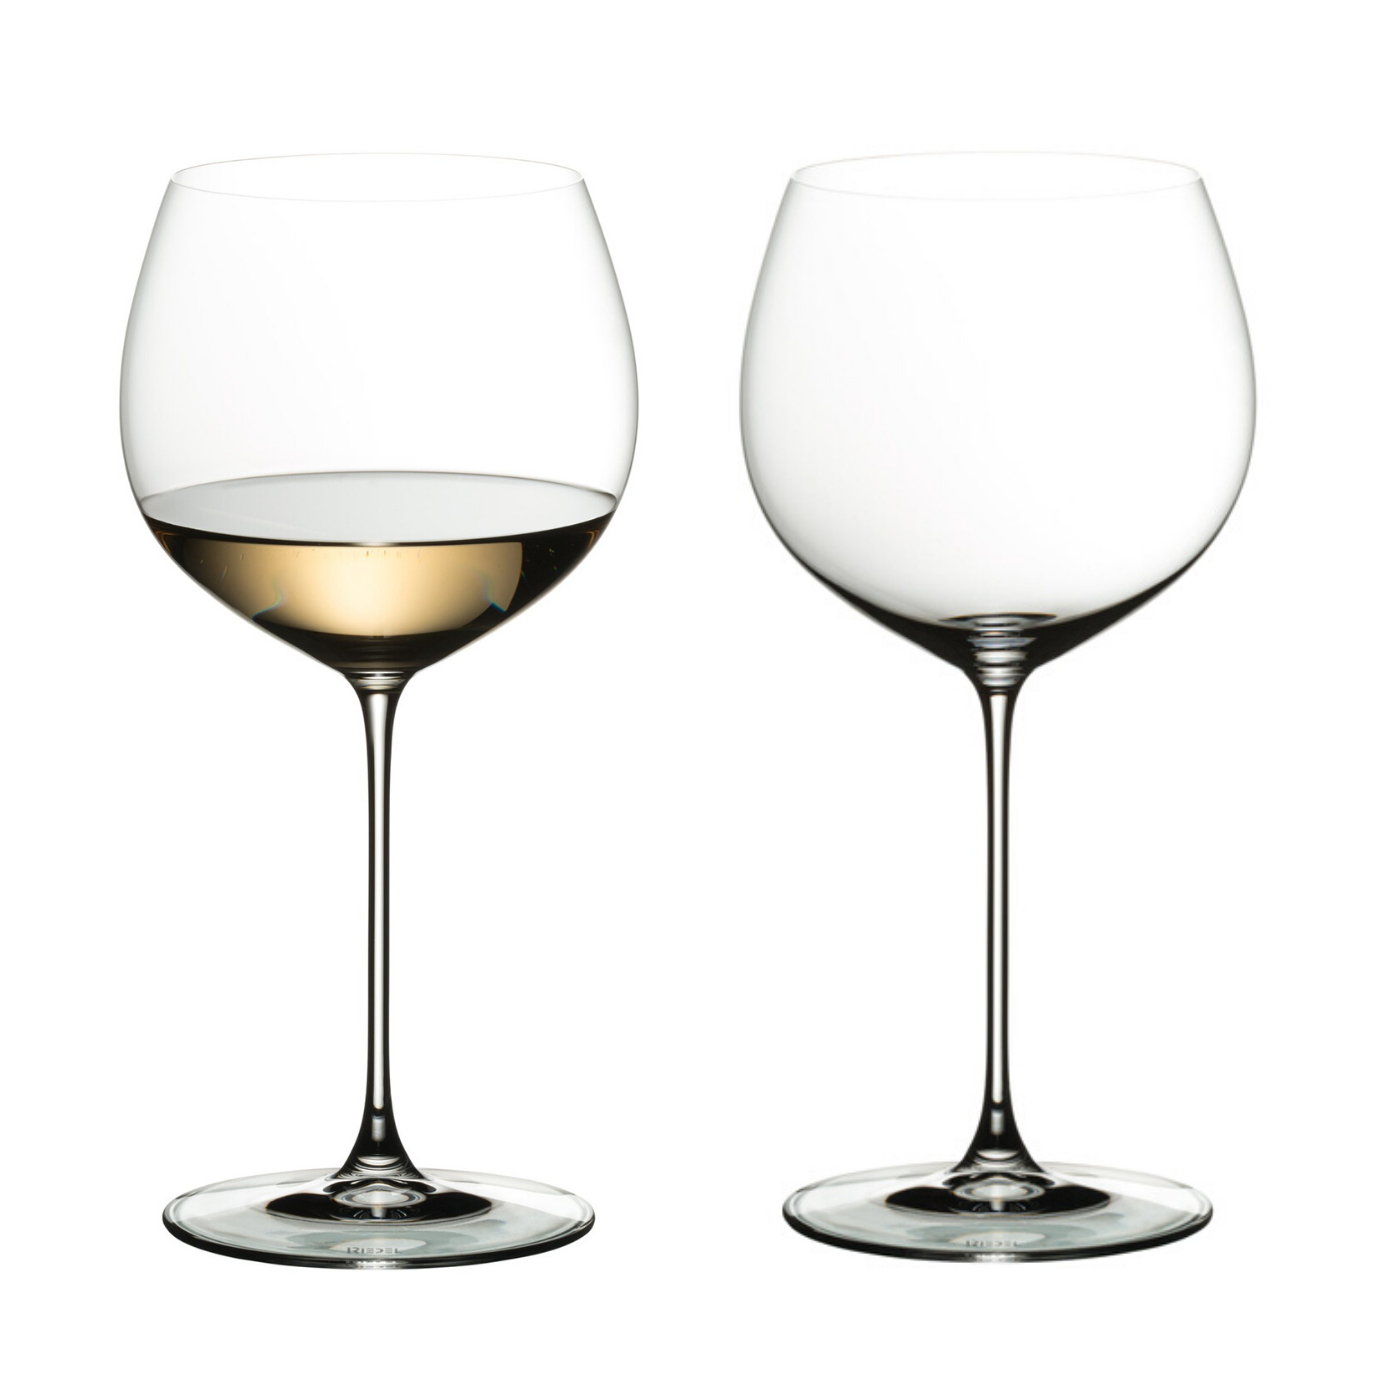 Riedel Veritas Oaked Chardonnay (set of 2)